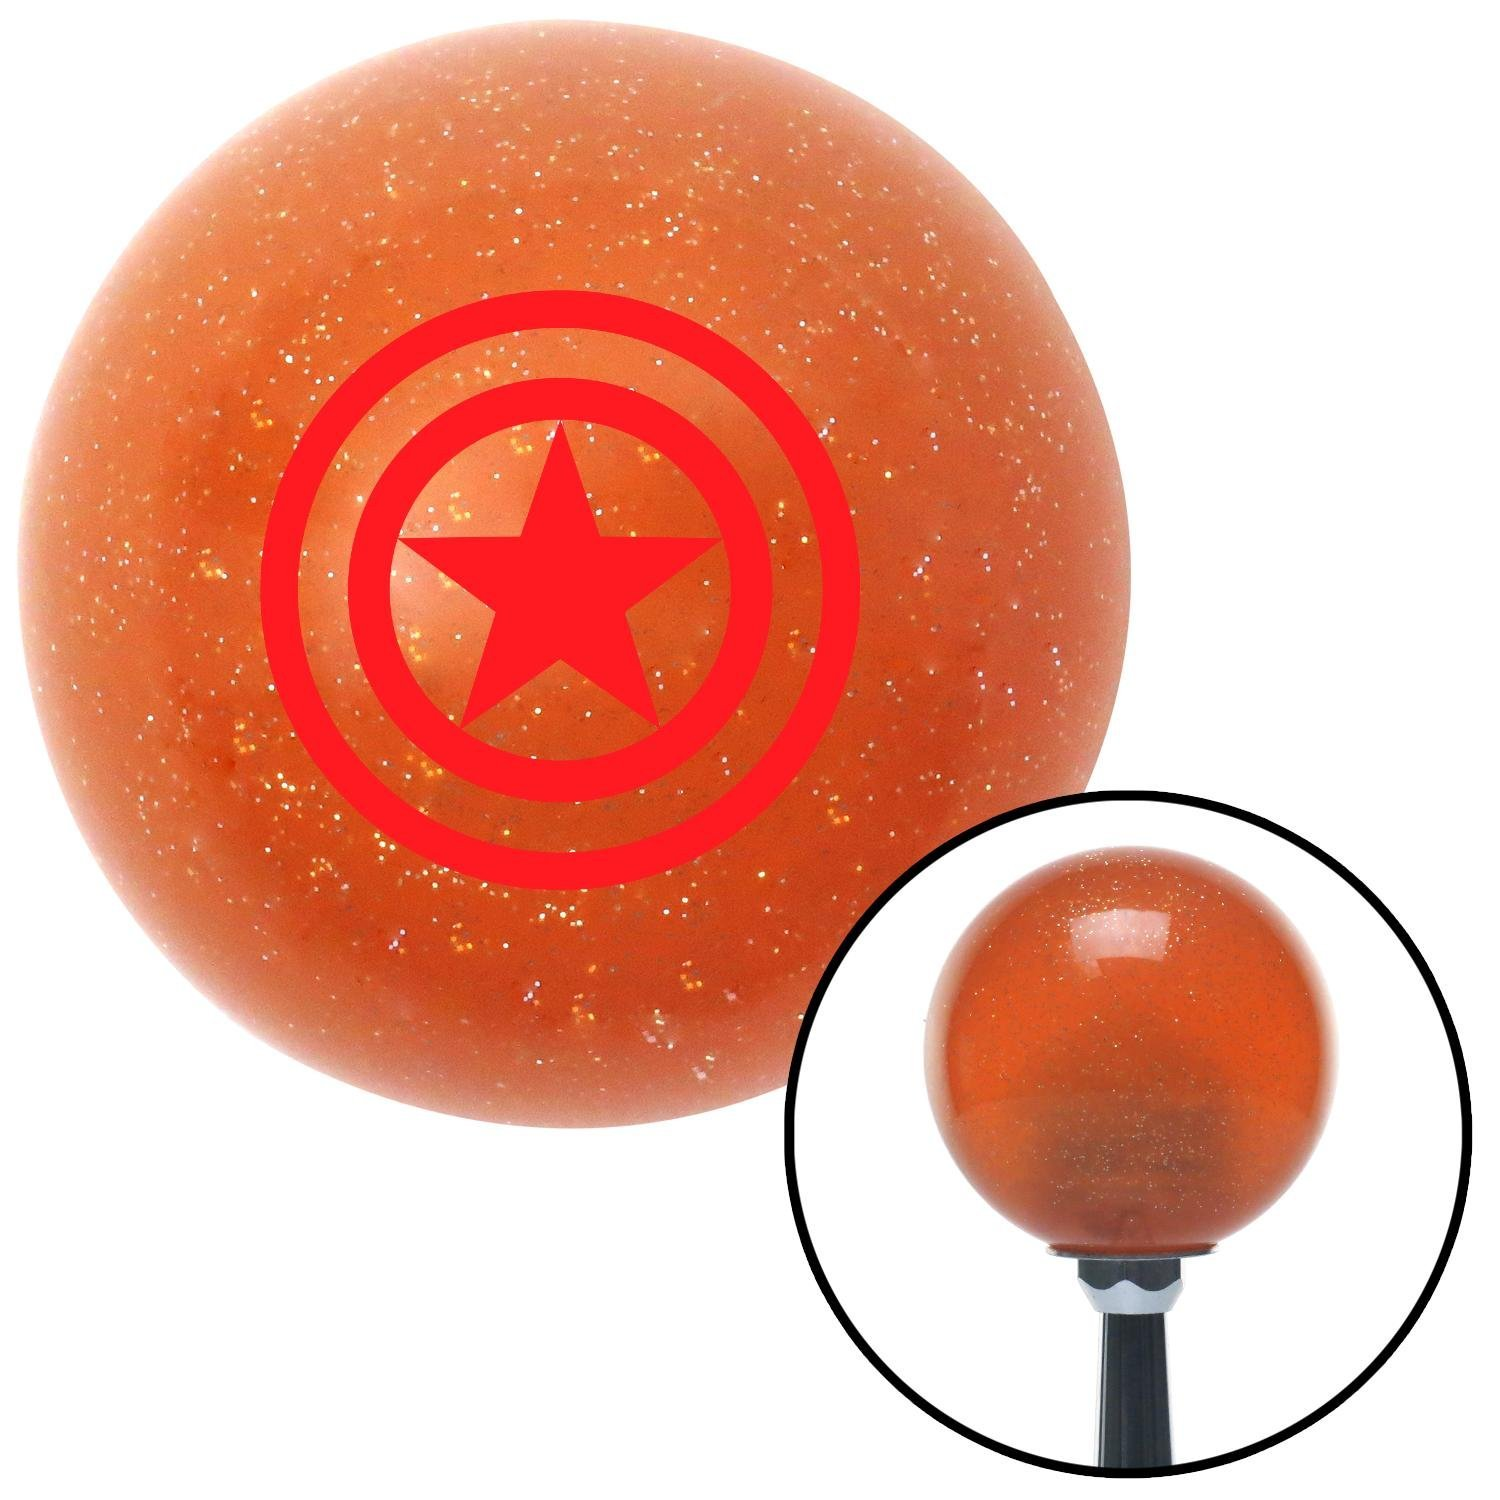 Red Outlined Star American Shifter 39161 Orange Metal Flake Shift Knob with 16mm x 1.5 Insert